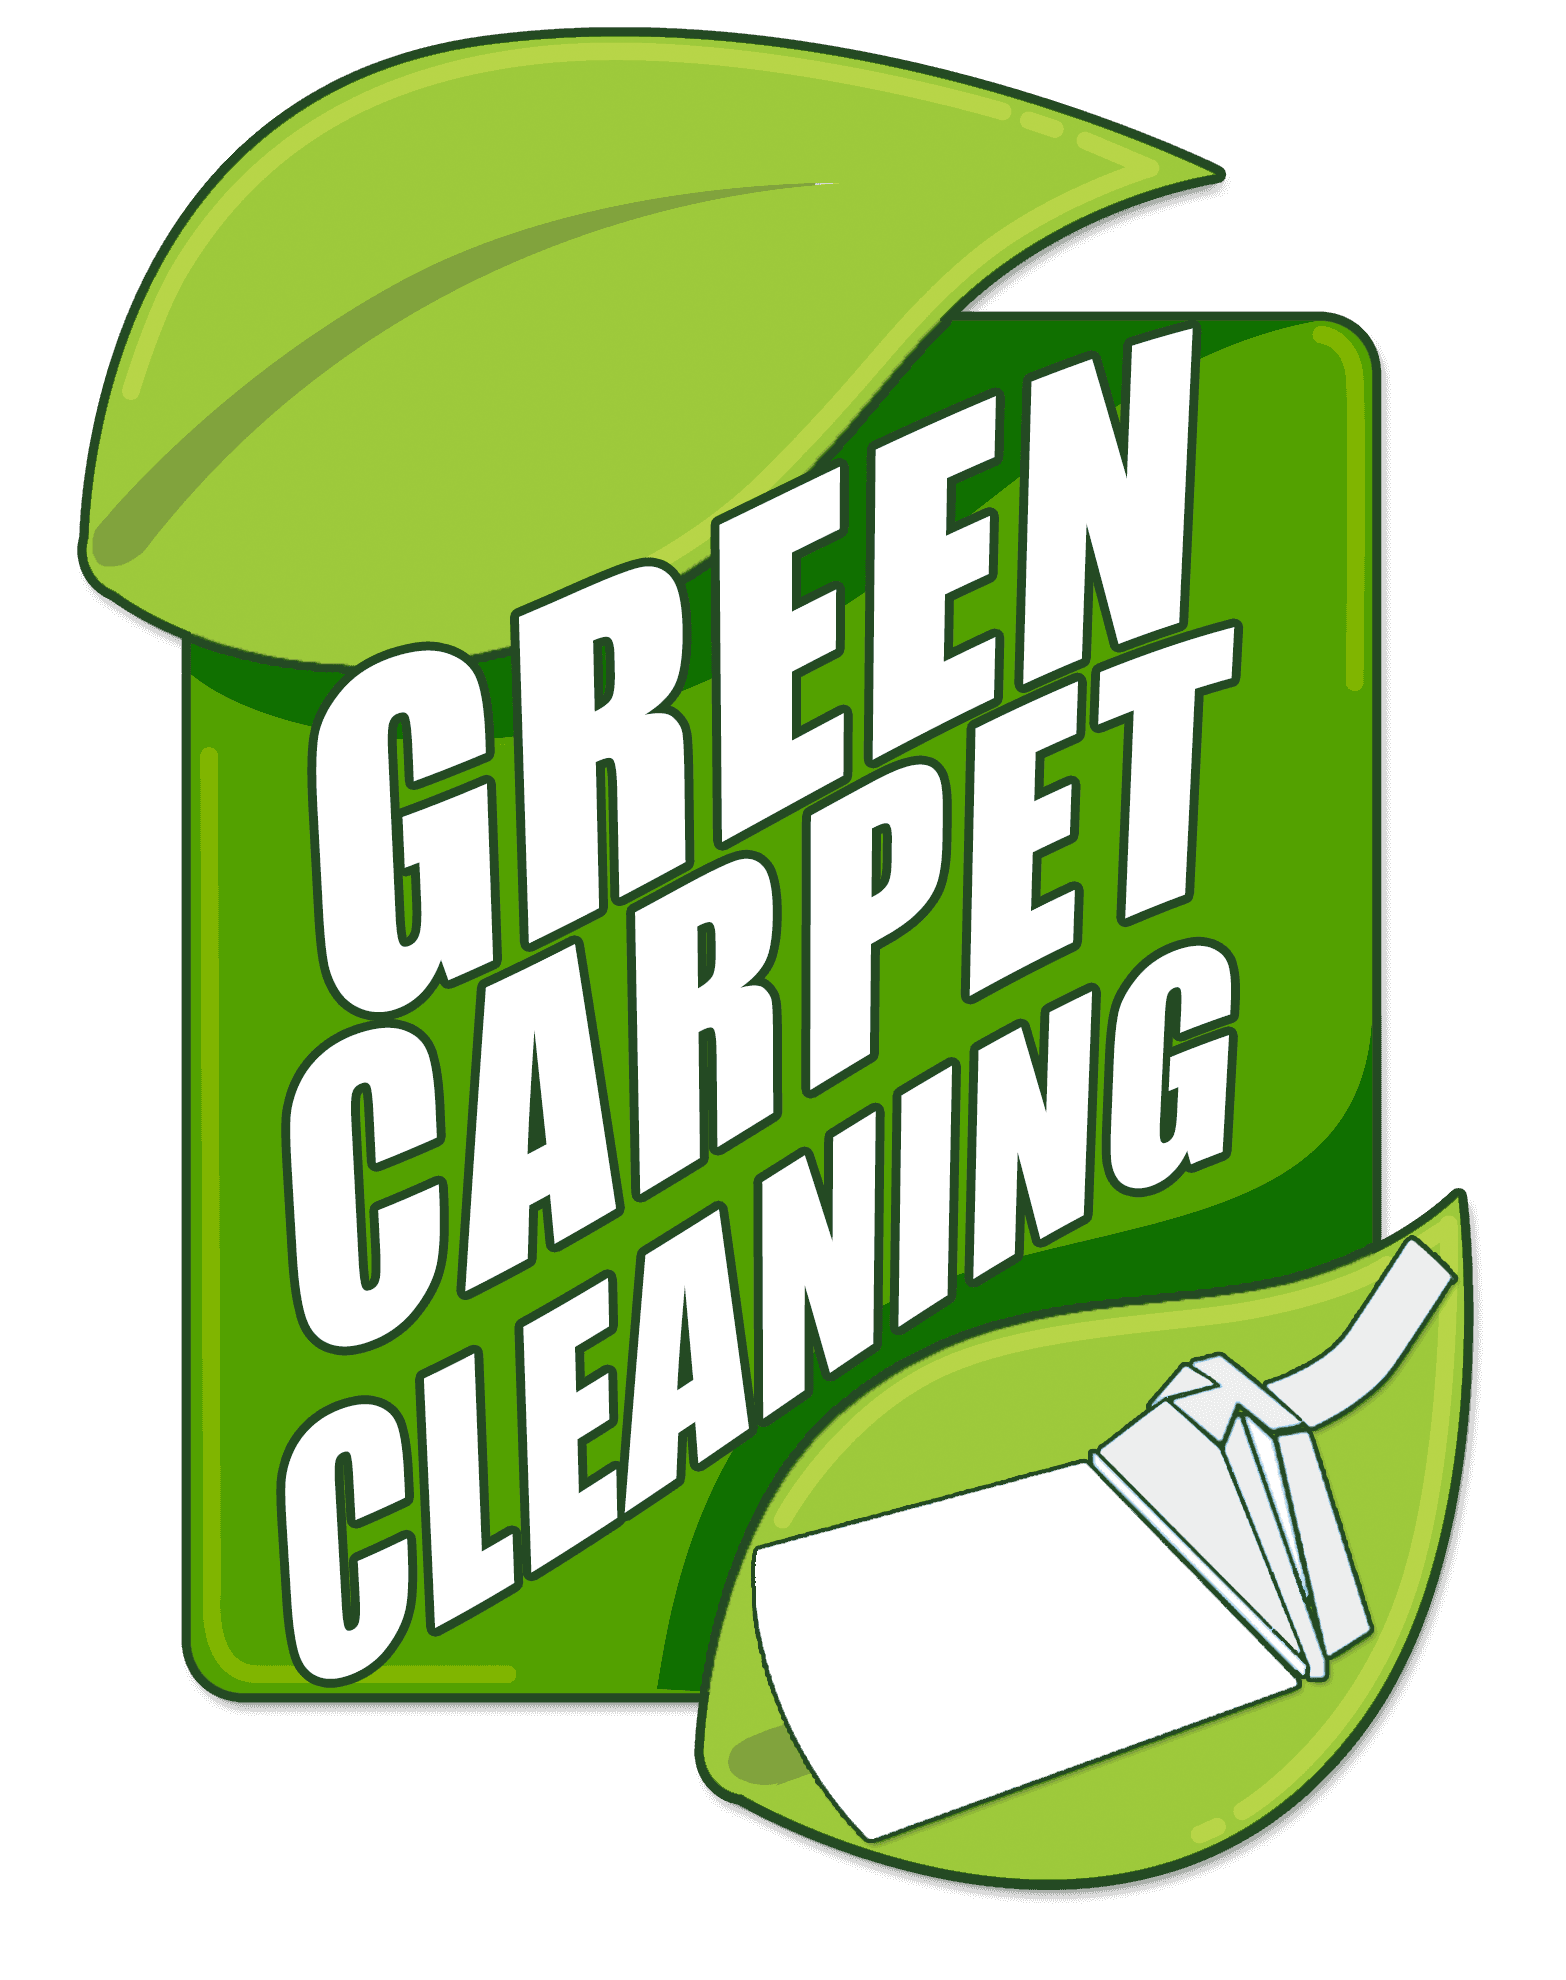 Carpet clipart green carpet. Cleaning services steam company